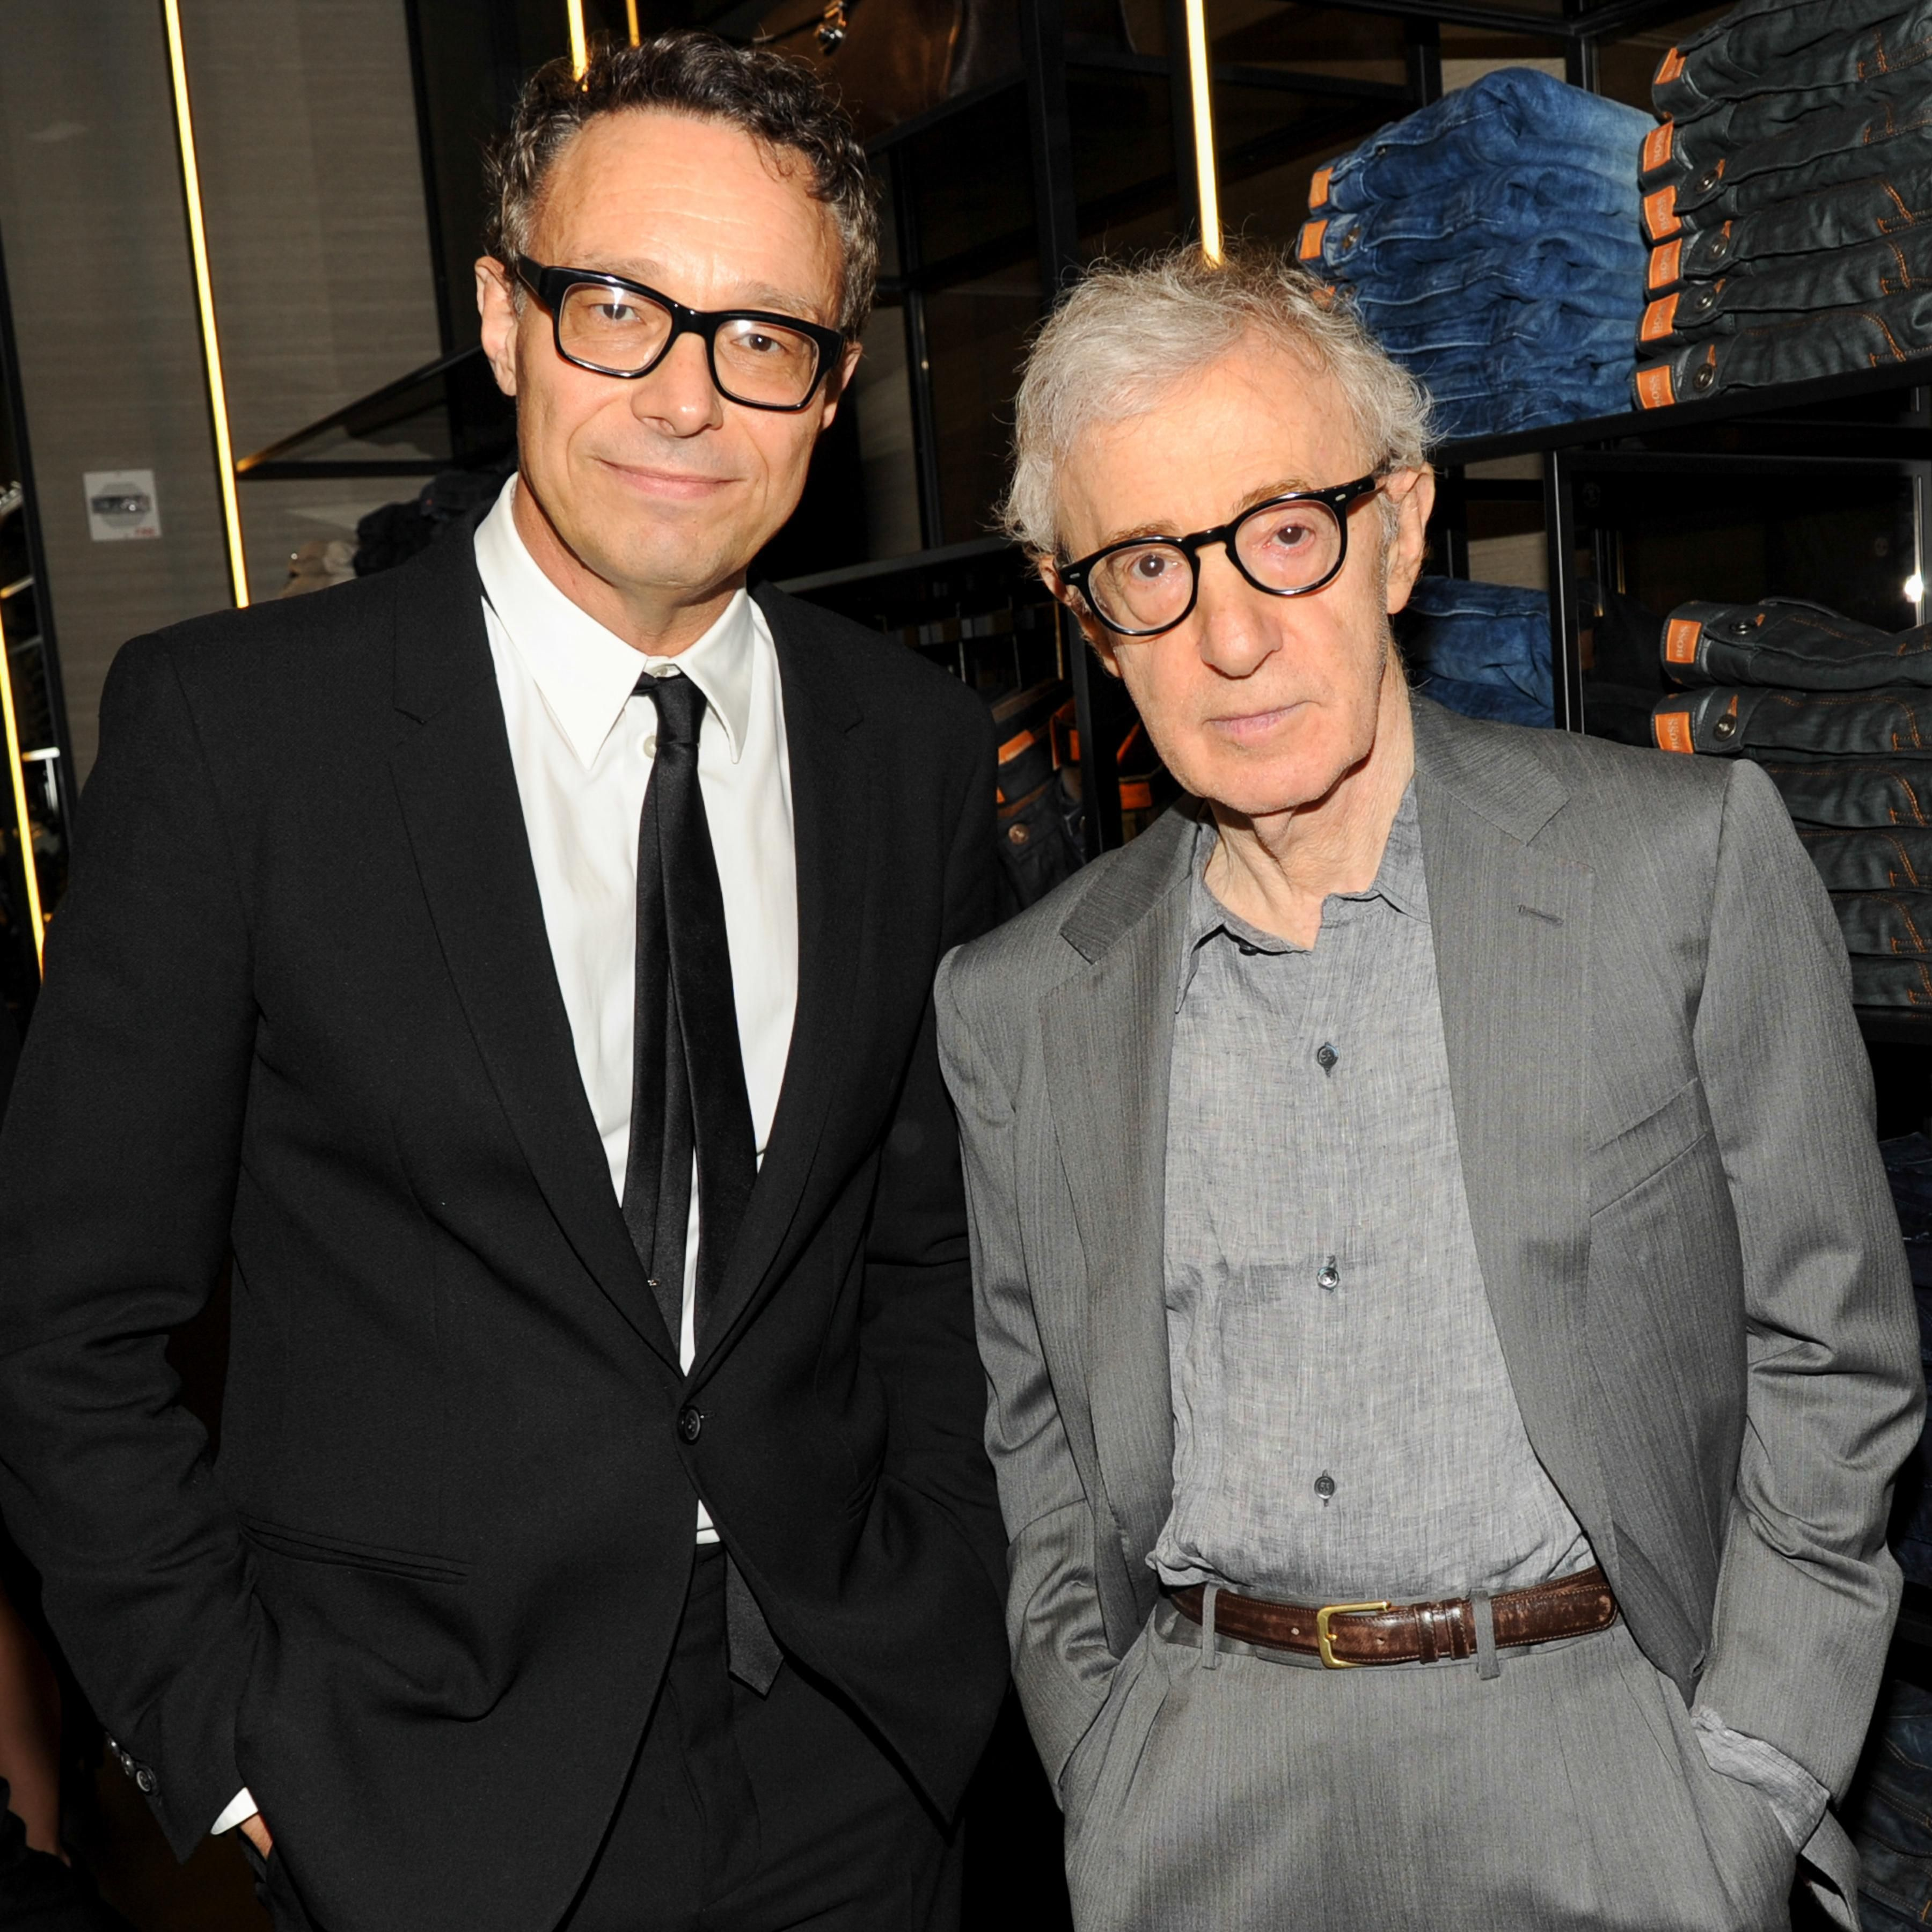 Video artist Marco Brambilla with Woody Allen at the opening event of the #BOSS Store Columbus Circle #HBNYC